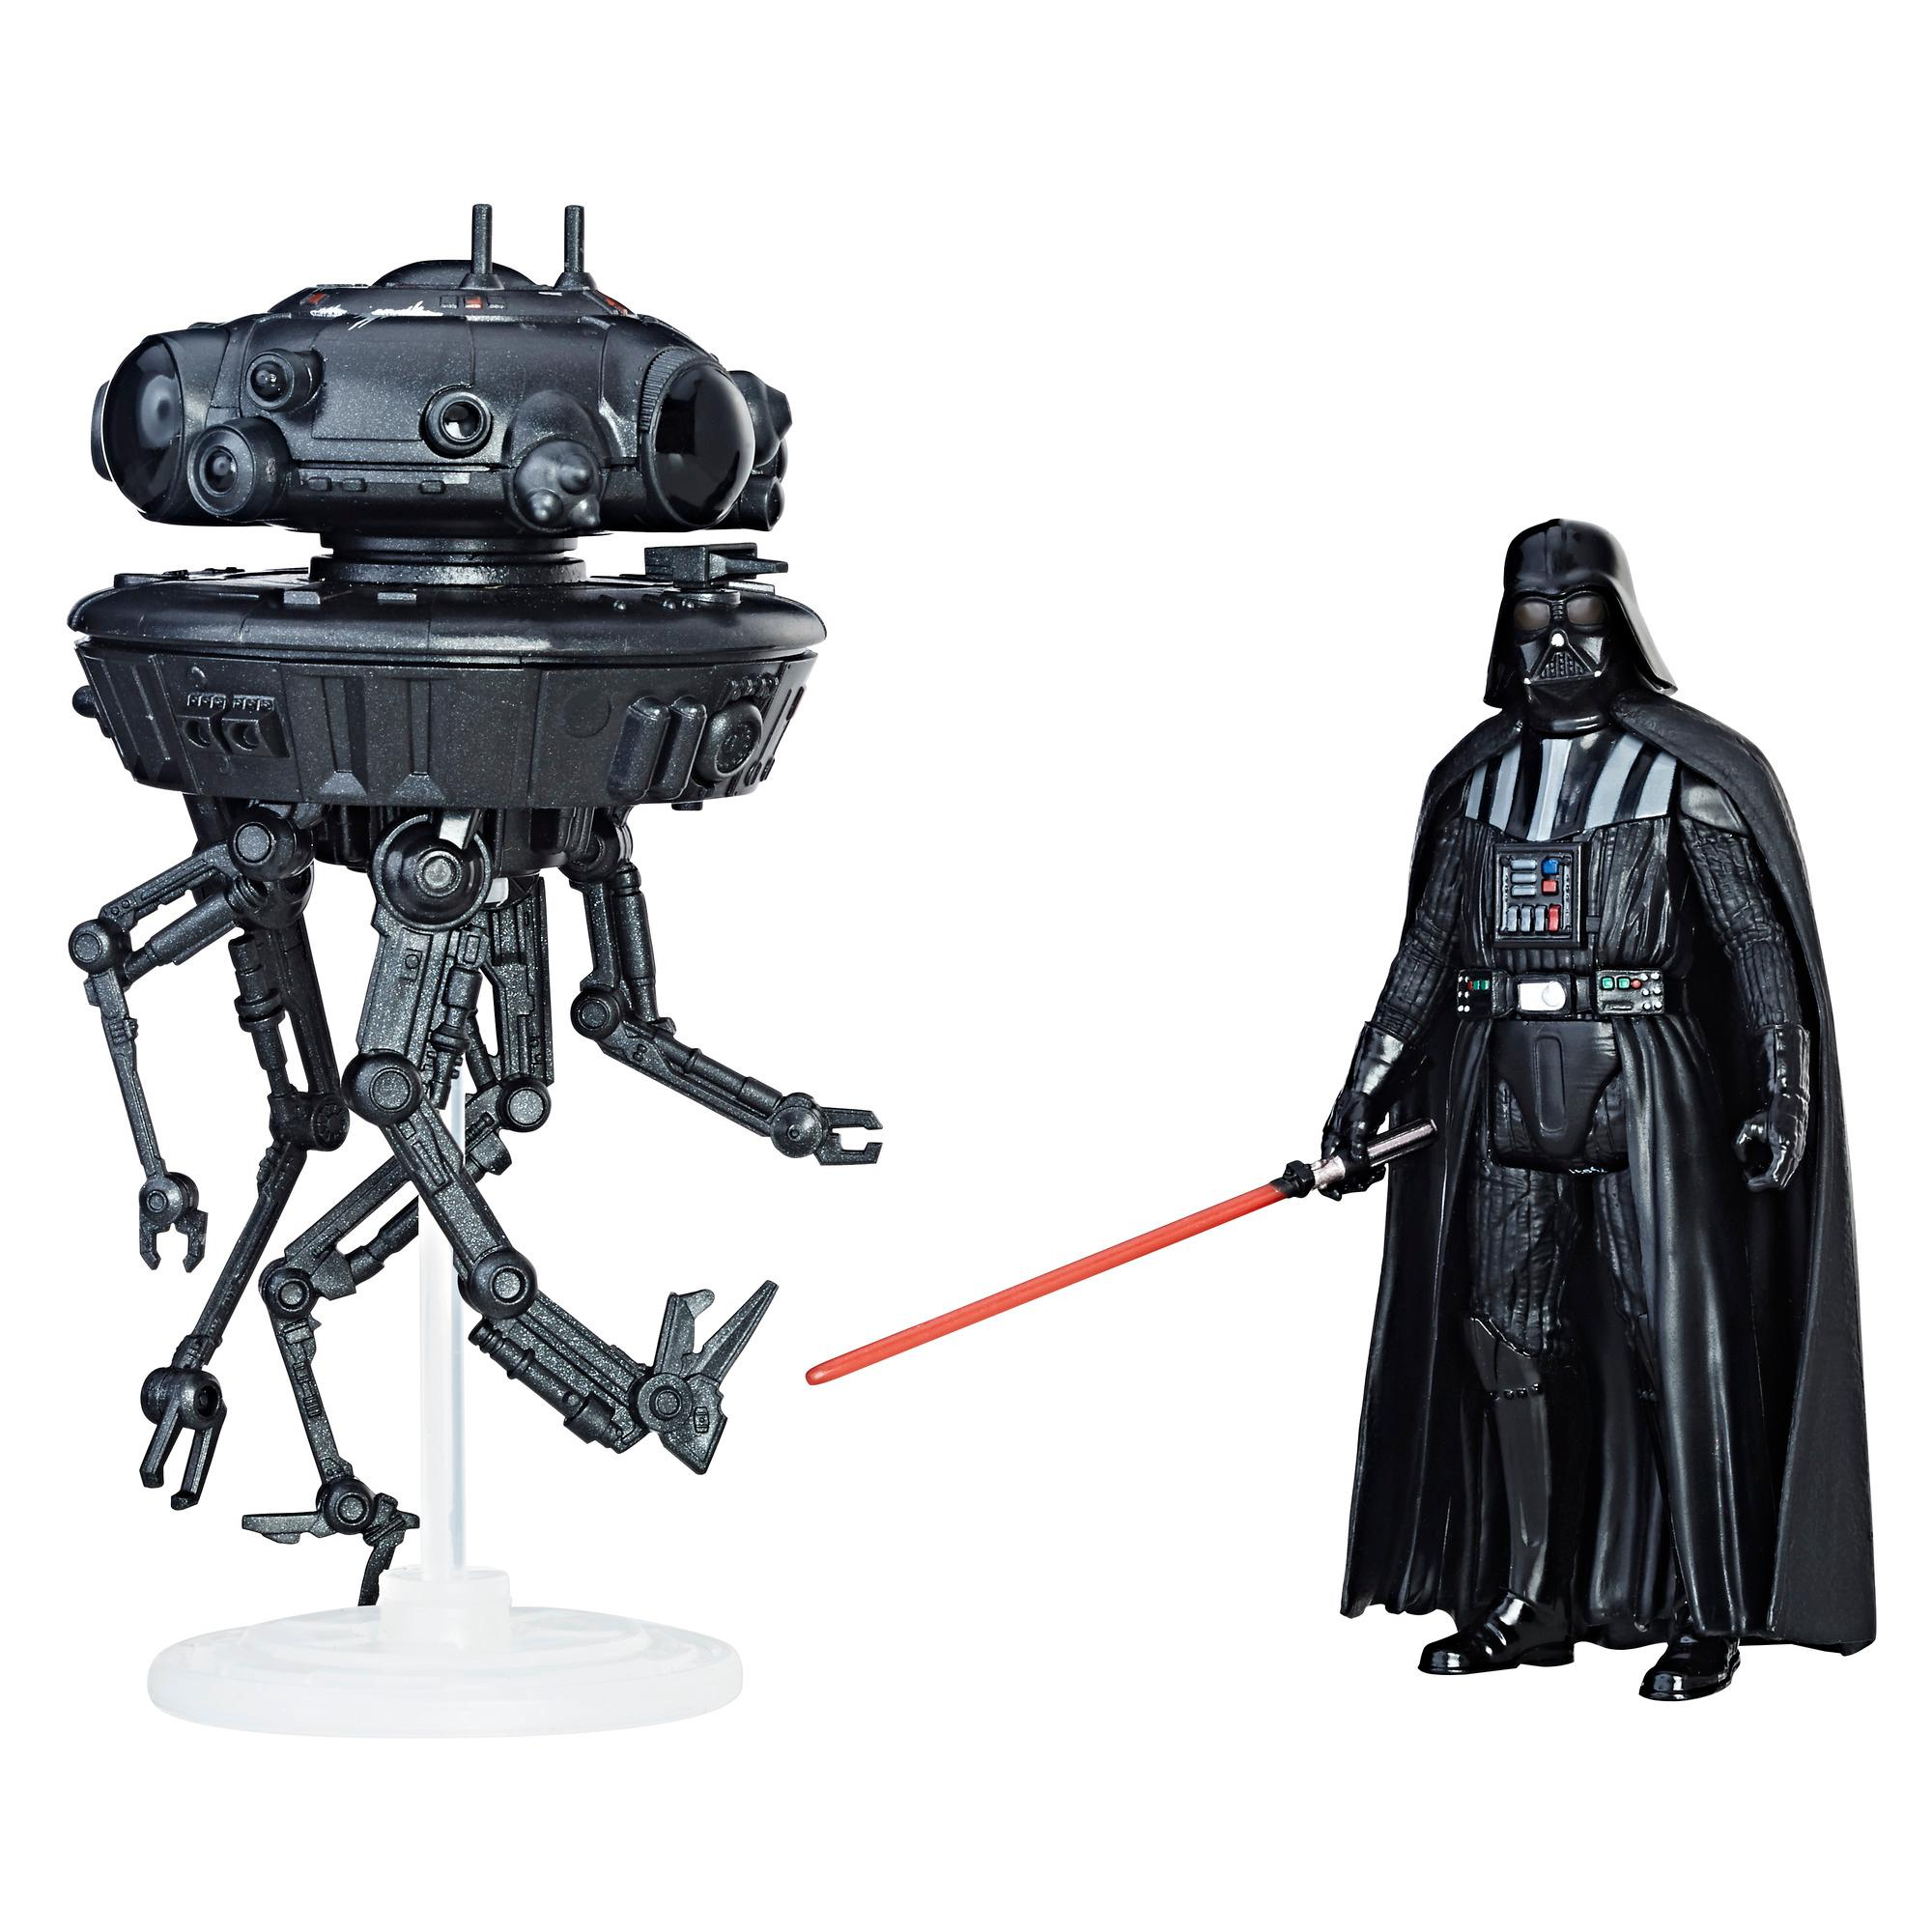 Star Wars Force Link - Droide sonda imperial y figura de Darth Vader